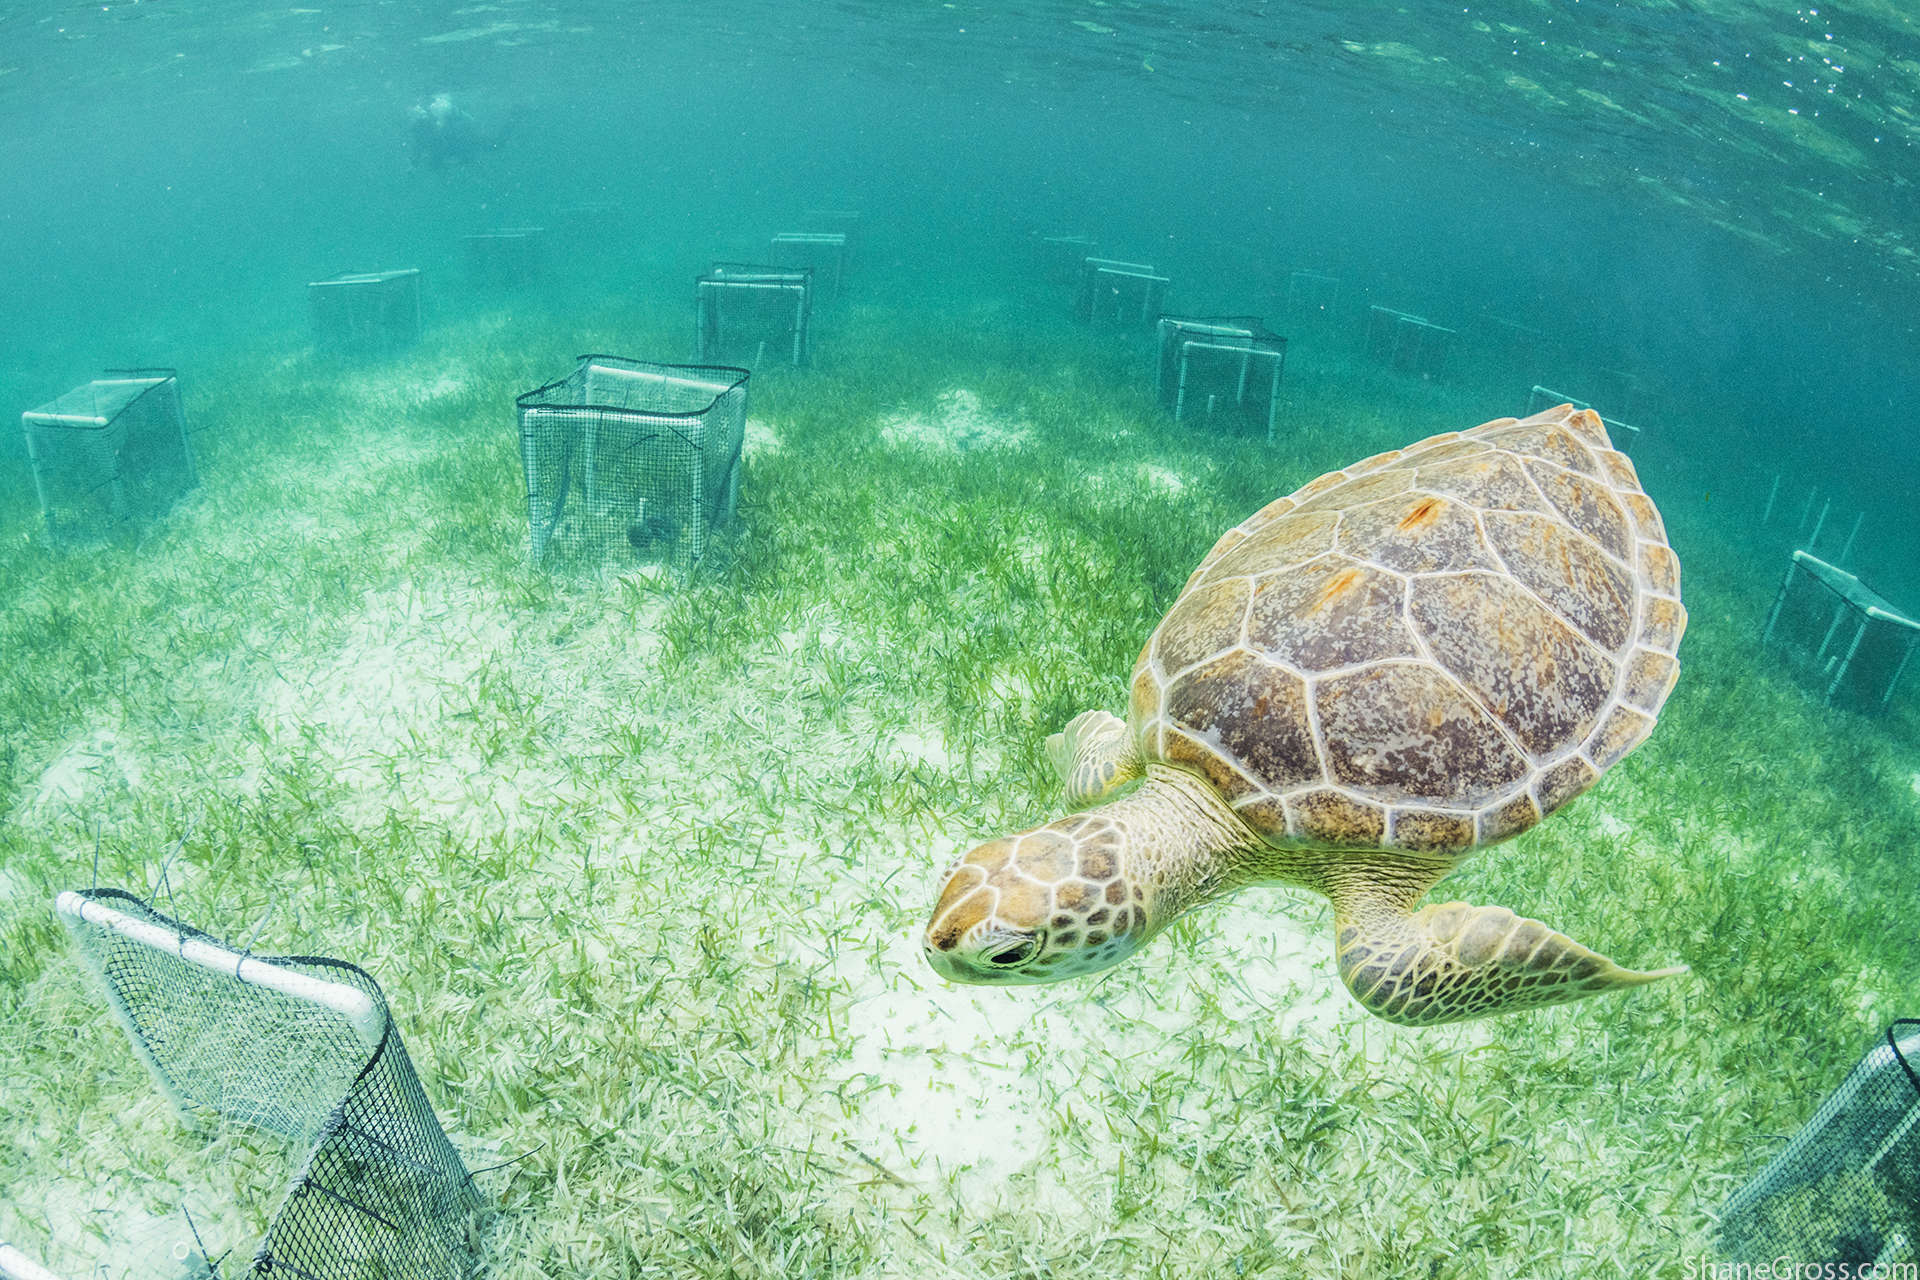 The Smithsonian TEN Network, Eleuthera array with 'Archie' who just loves to rub up against us as we attempt to collect data! Image @shanegrossphoto